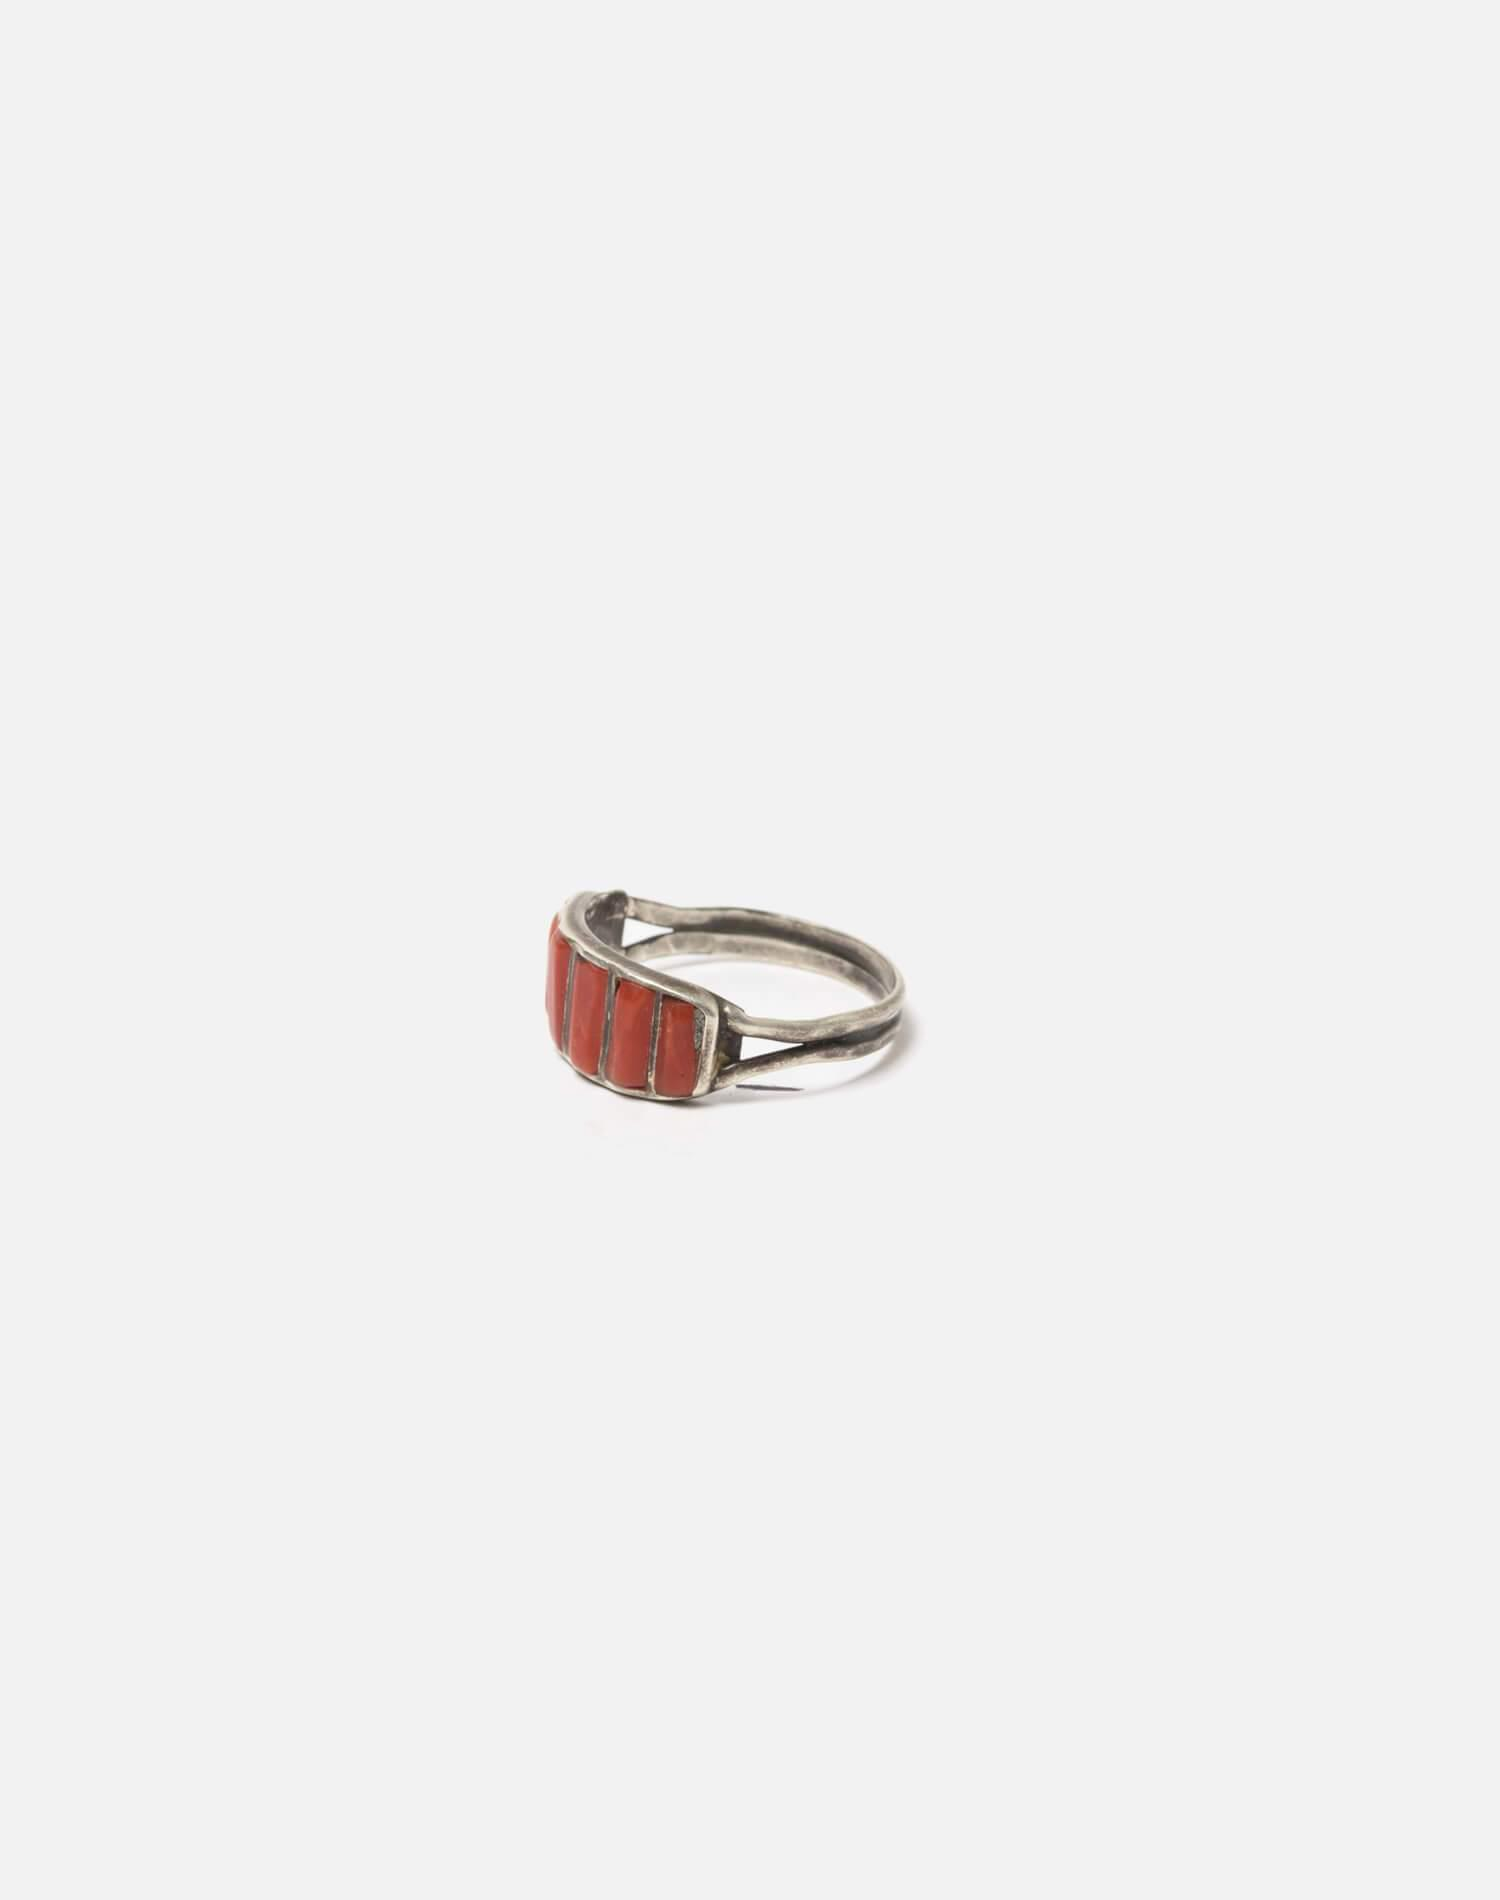 1950s Zuni Inlaid Coral And Sterling Ring - #100 1